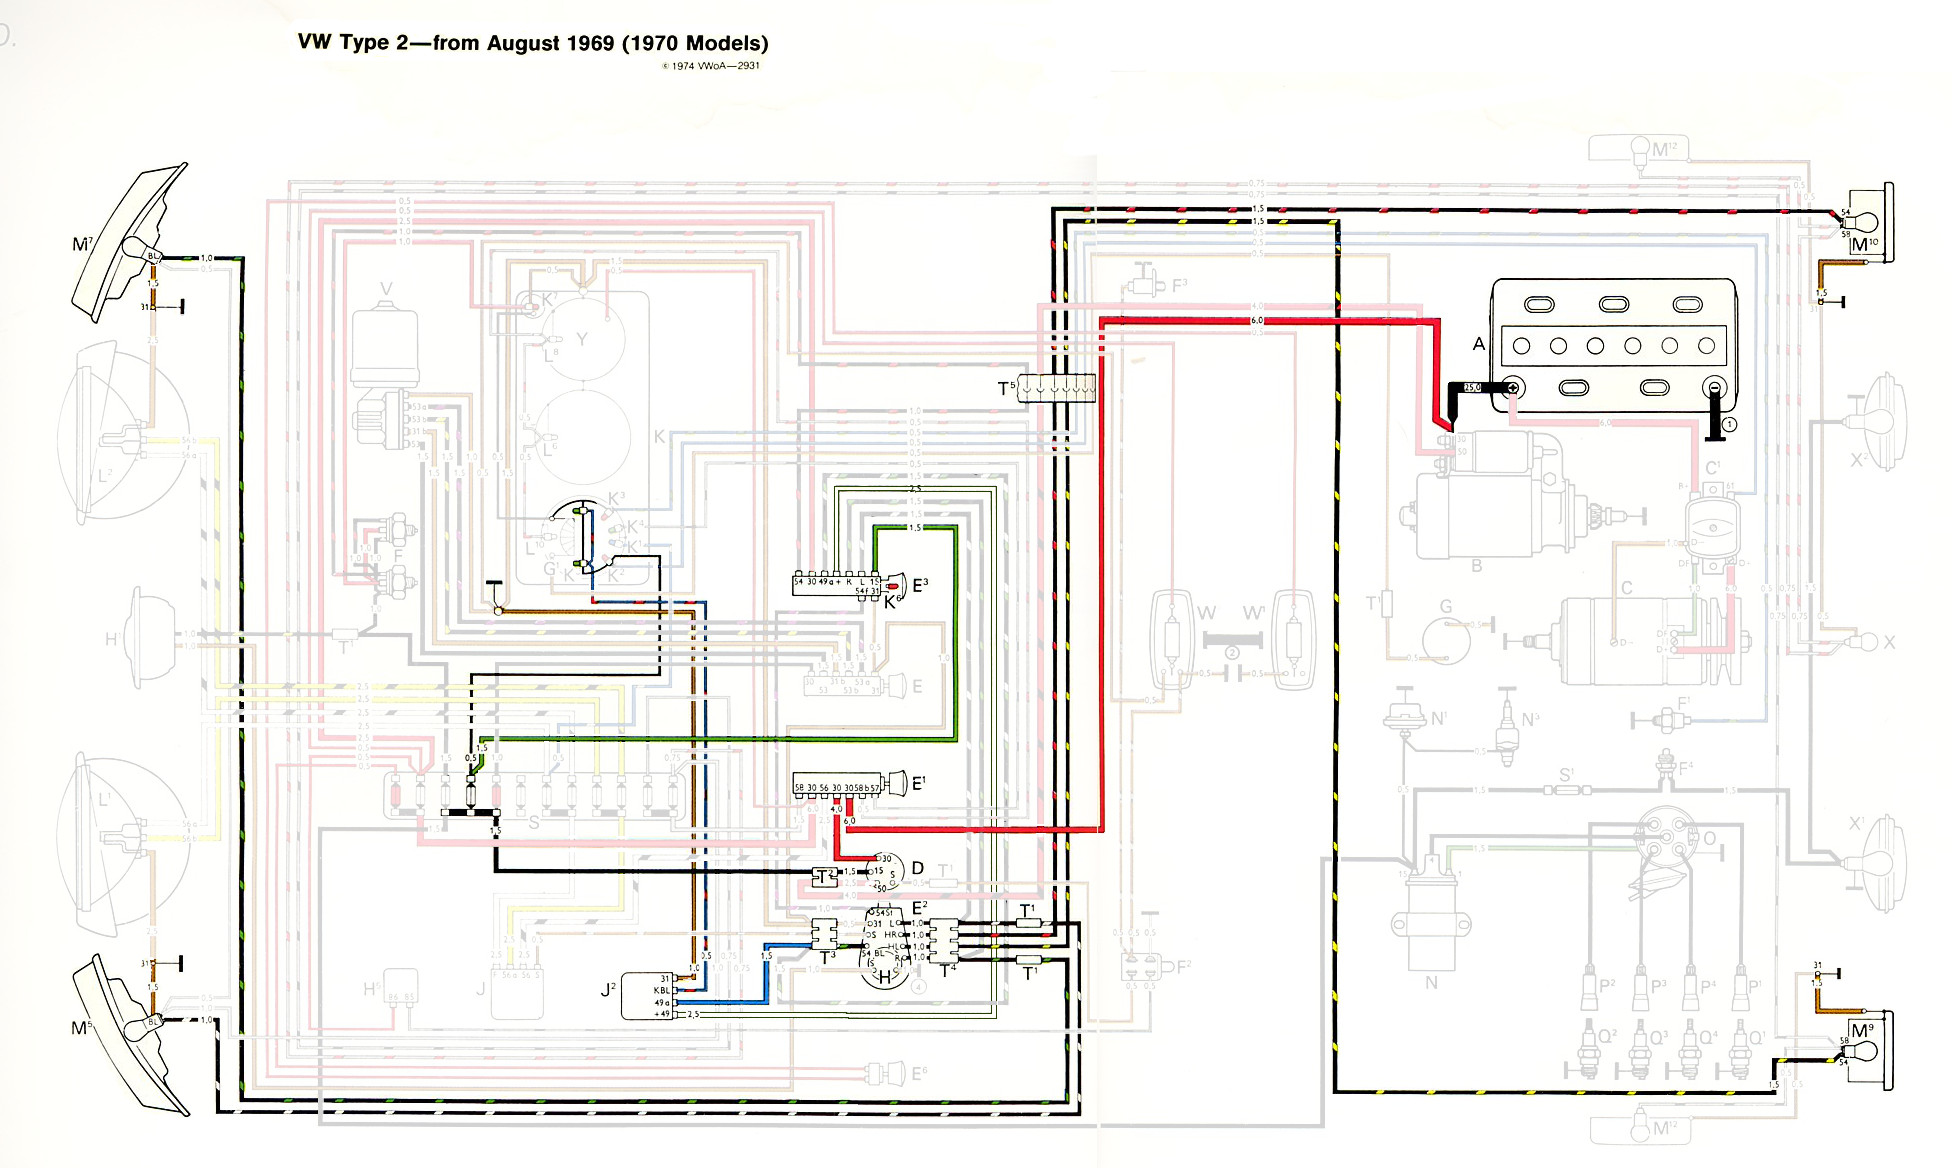 freightliner bus wiring diagram schematics wiring diagrams u2022 rh  parntesis co 2000 Mercury Mystique Wiring-Diagram 2000 Mercury Mystique  Wiring-Diagram